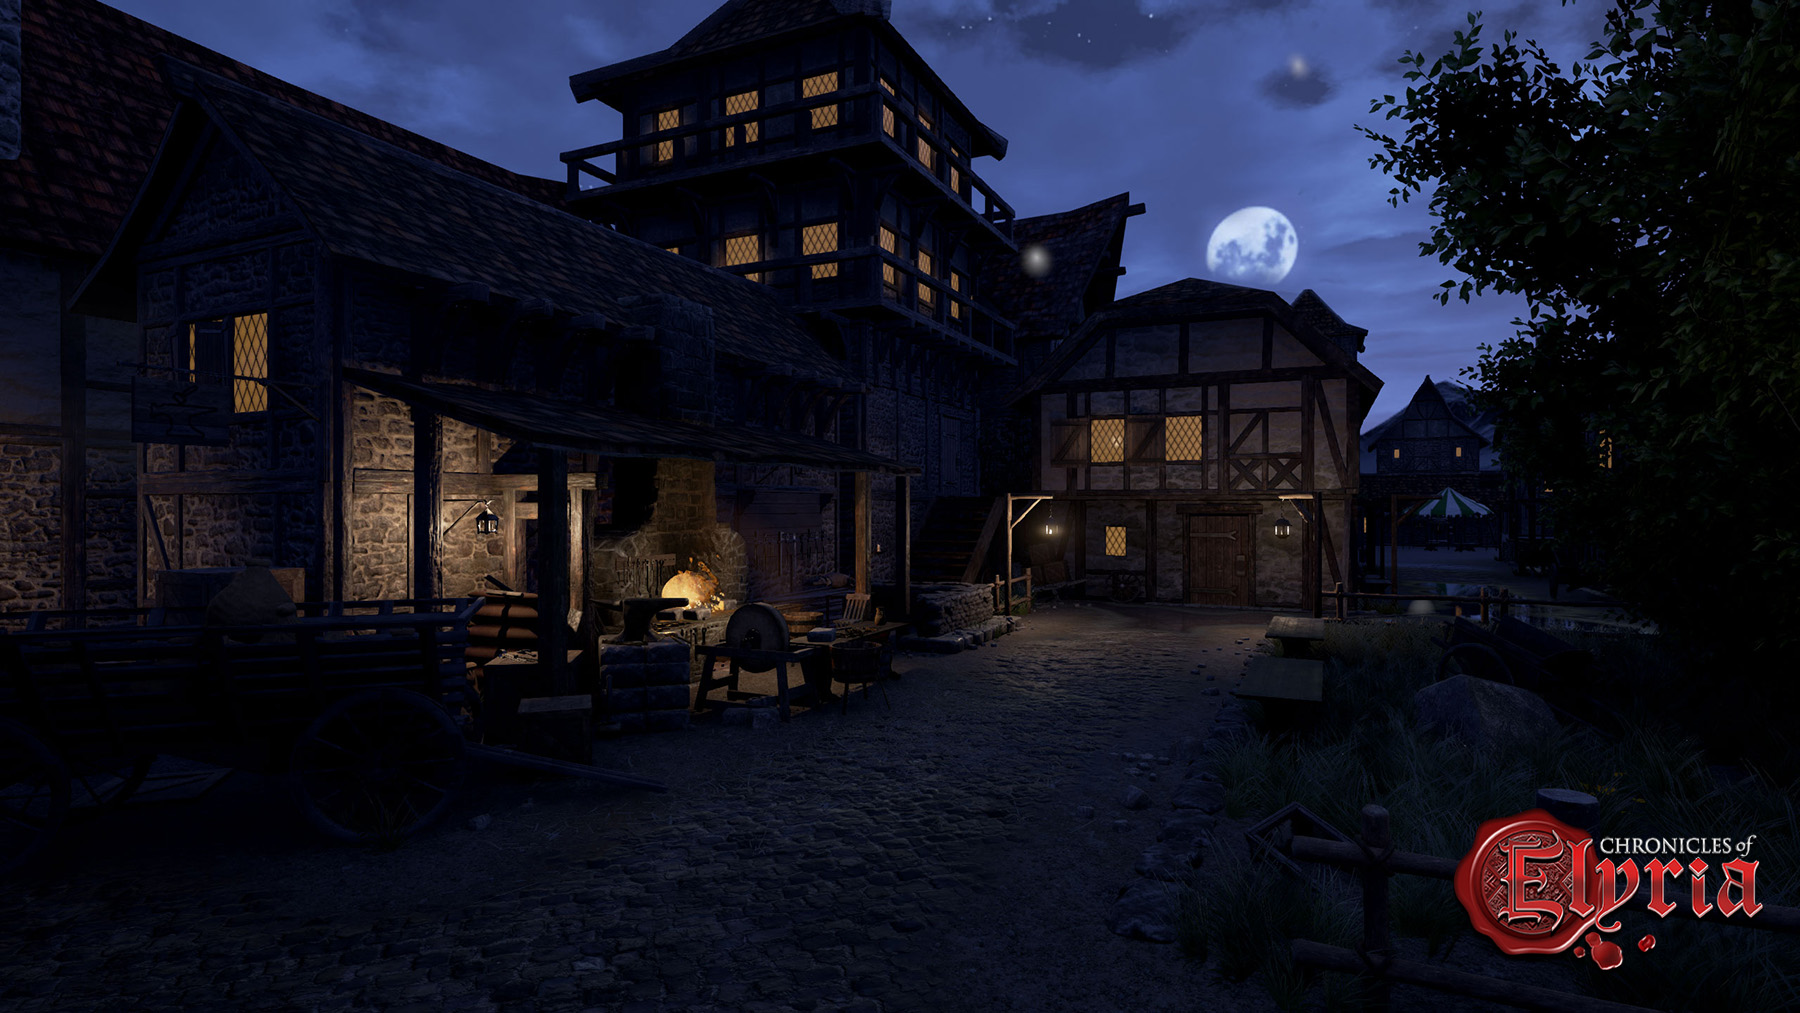 The forge at night